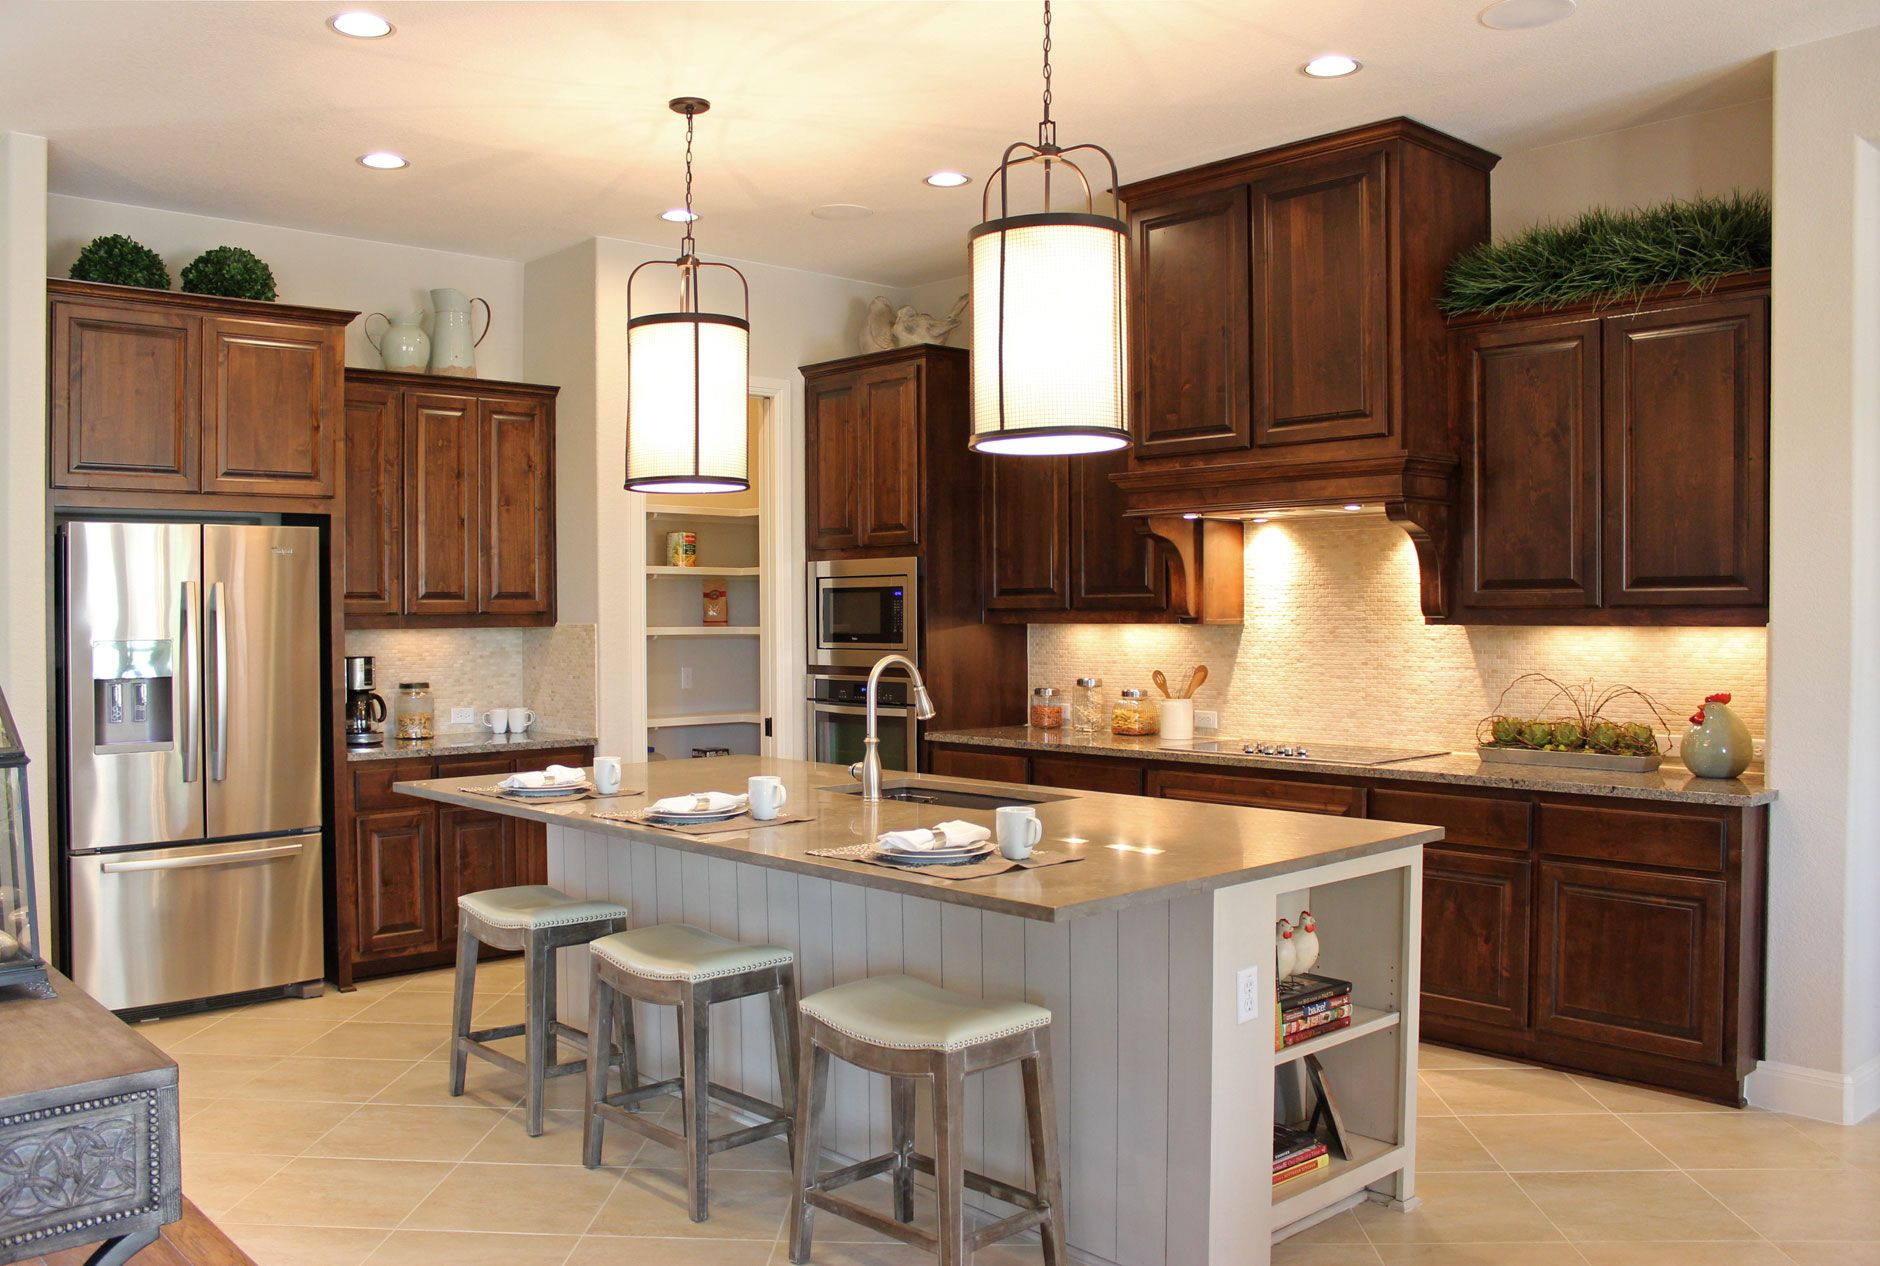 Burrows Cabinets kitchen cabinets in stained knotty alder and